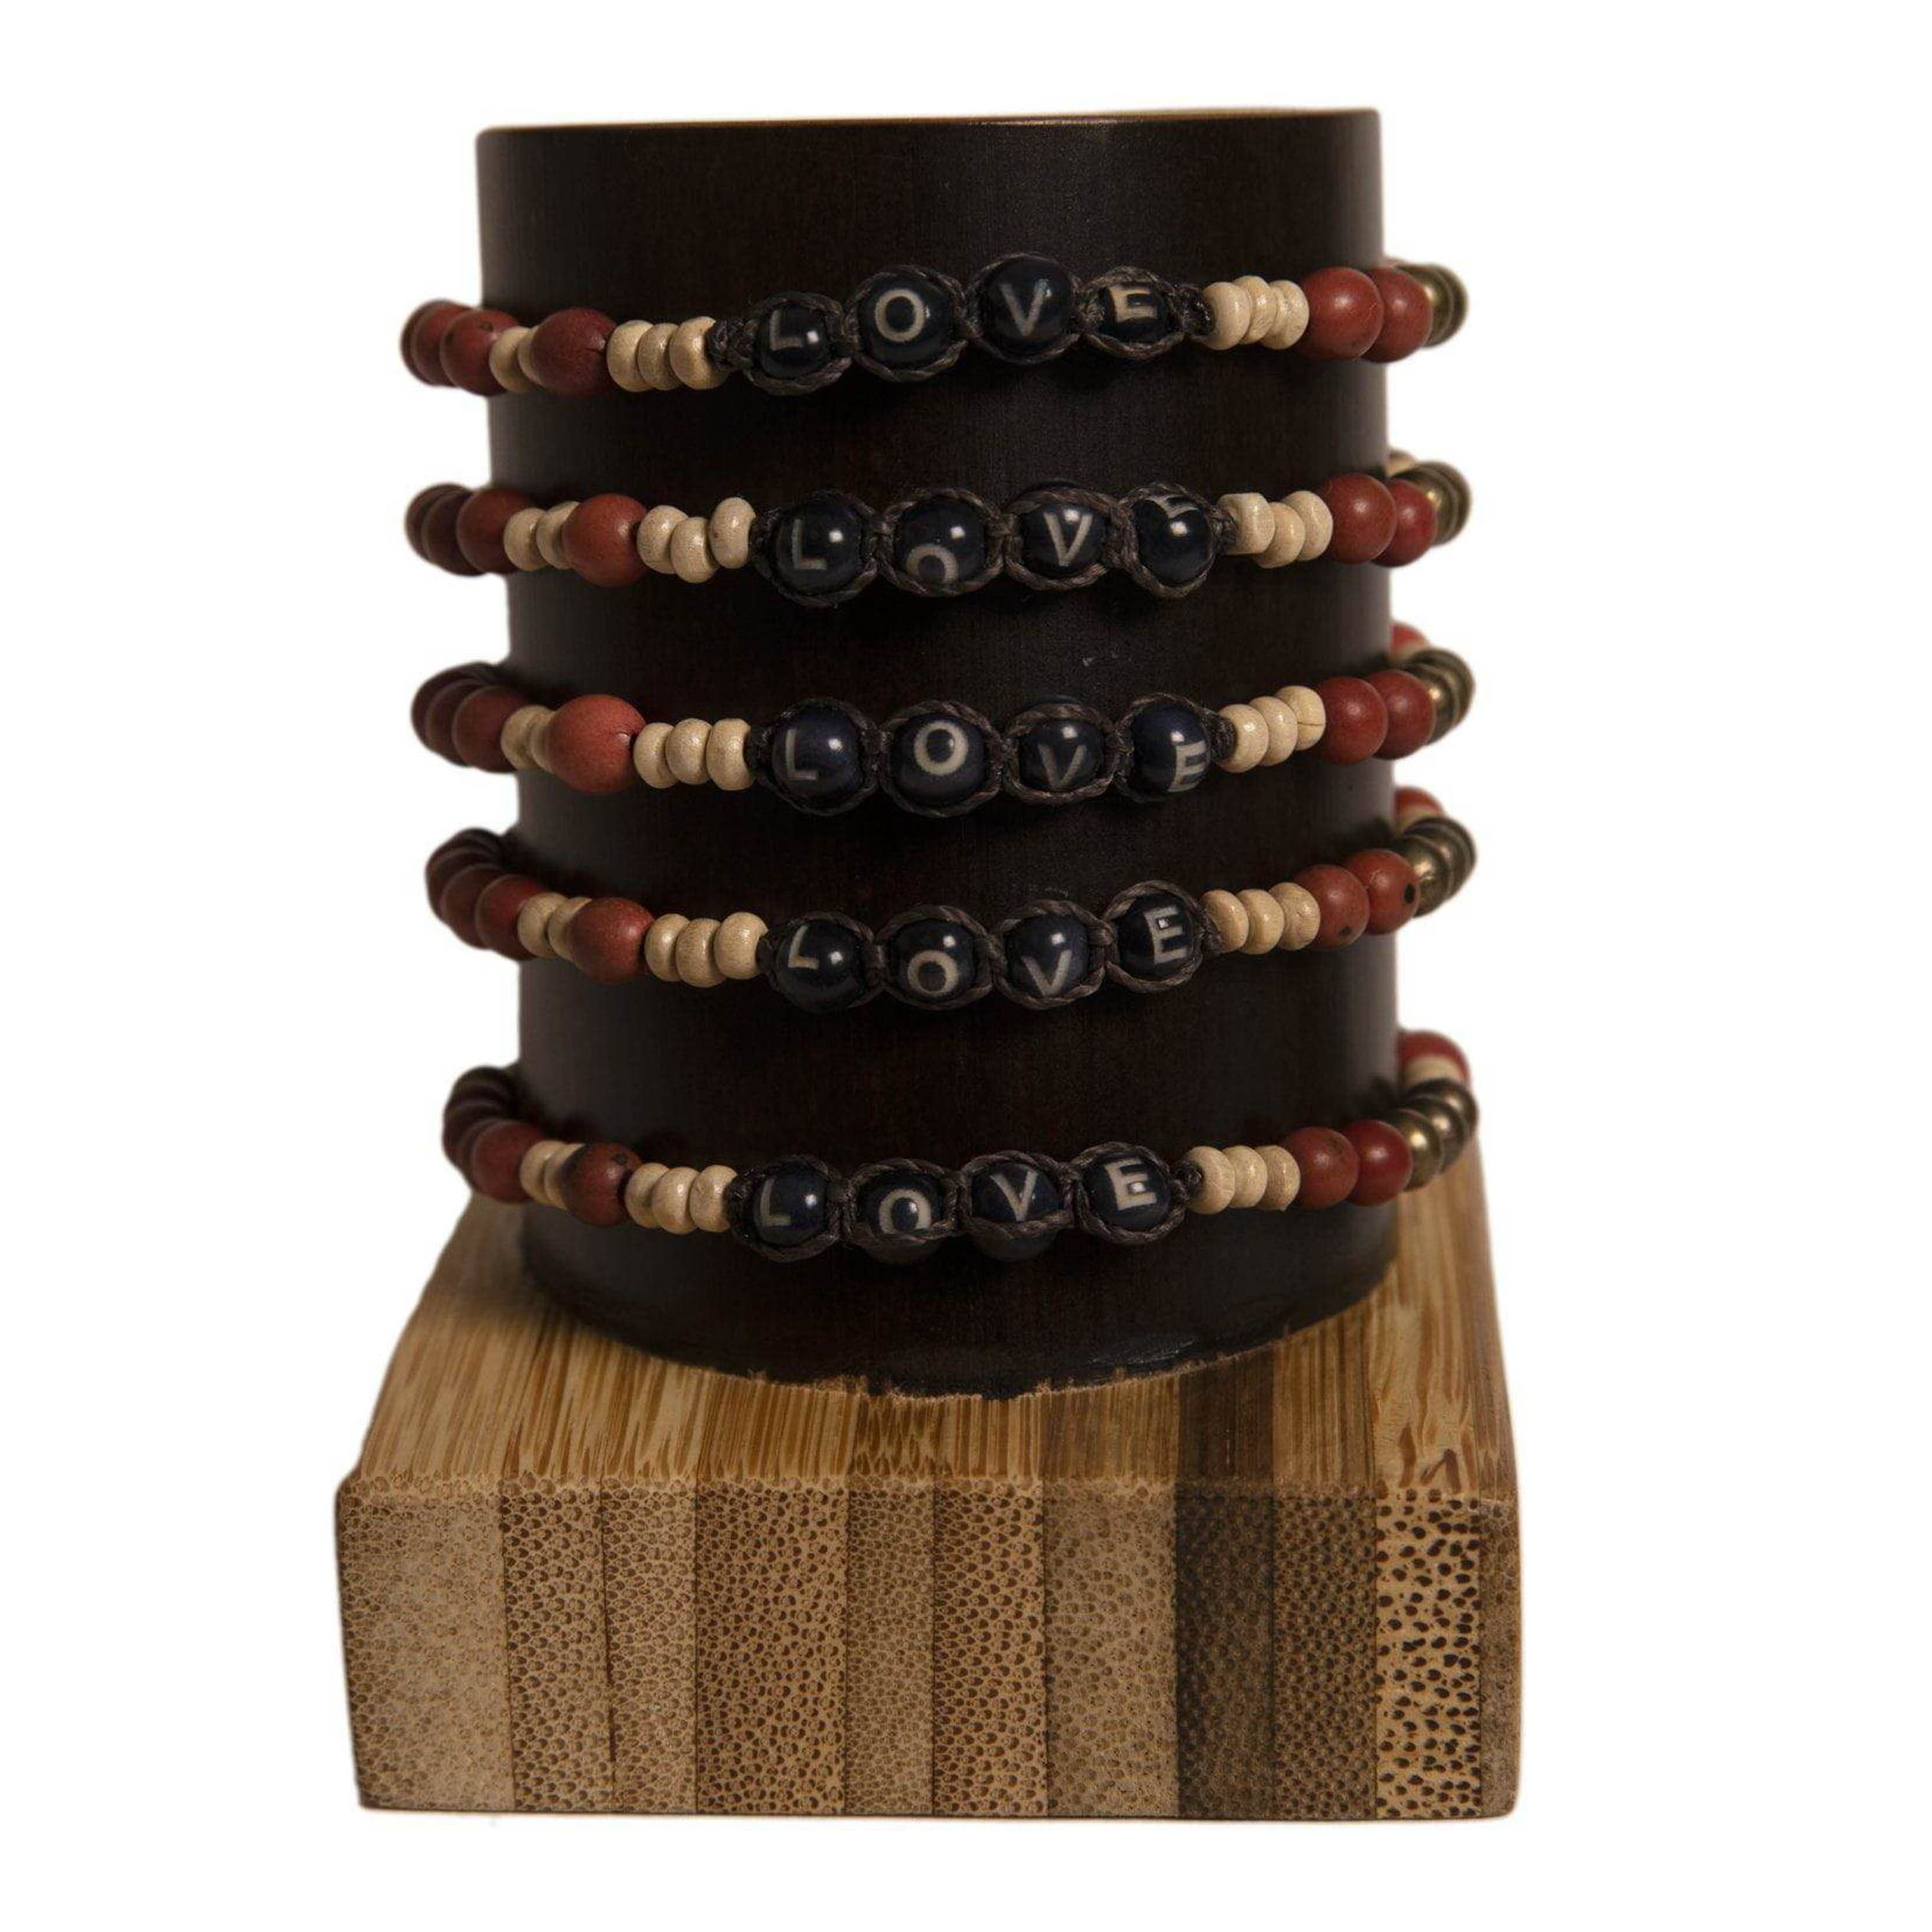 Bundle - Achira Harmony LOVE Bracelets friendship bracelets gifts that give back creates jobs for artisans in Ecuador